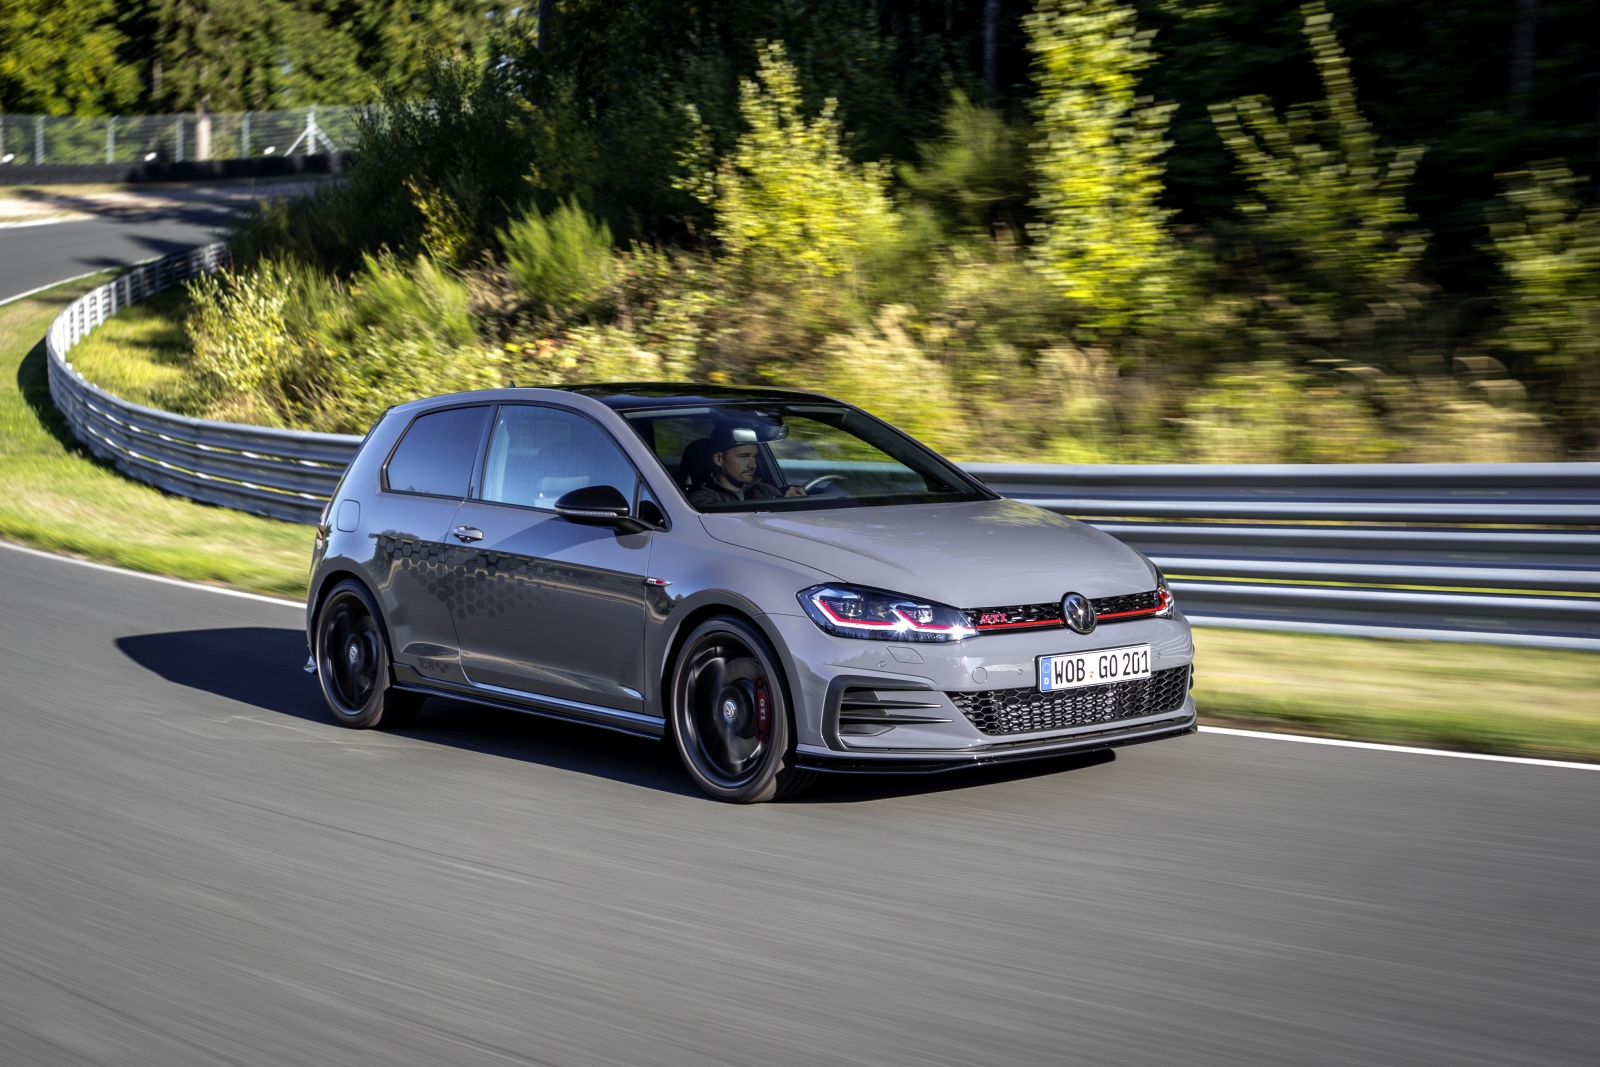 neuer vw golf gti tcr mit 290 ps technologietransfer. Black Bedroom Furniture Sets. Home Design Ideas